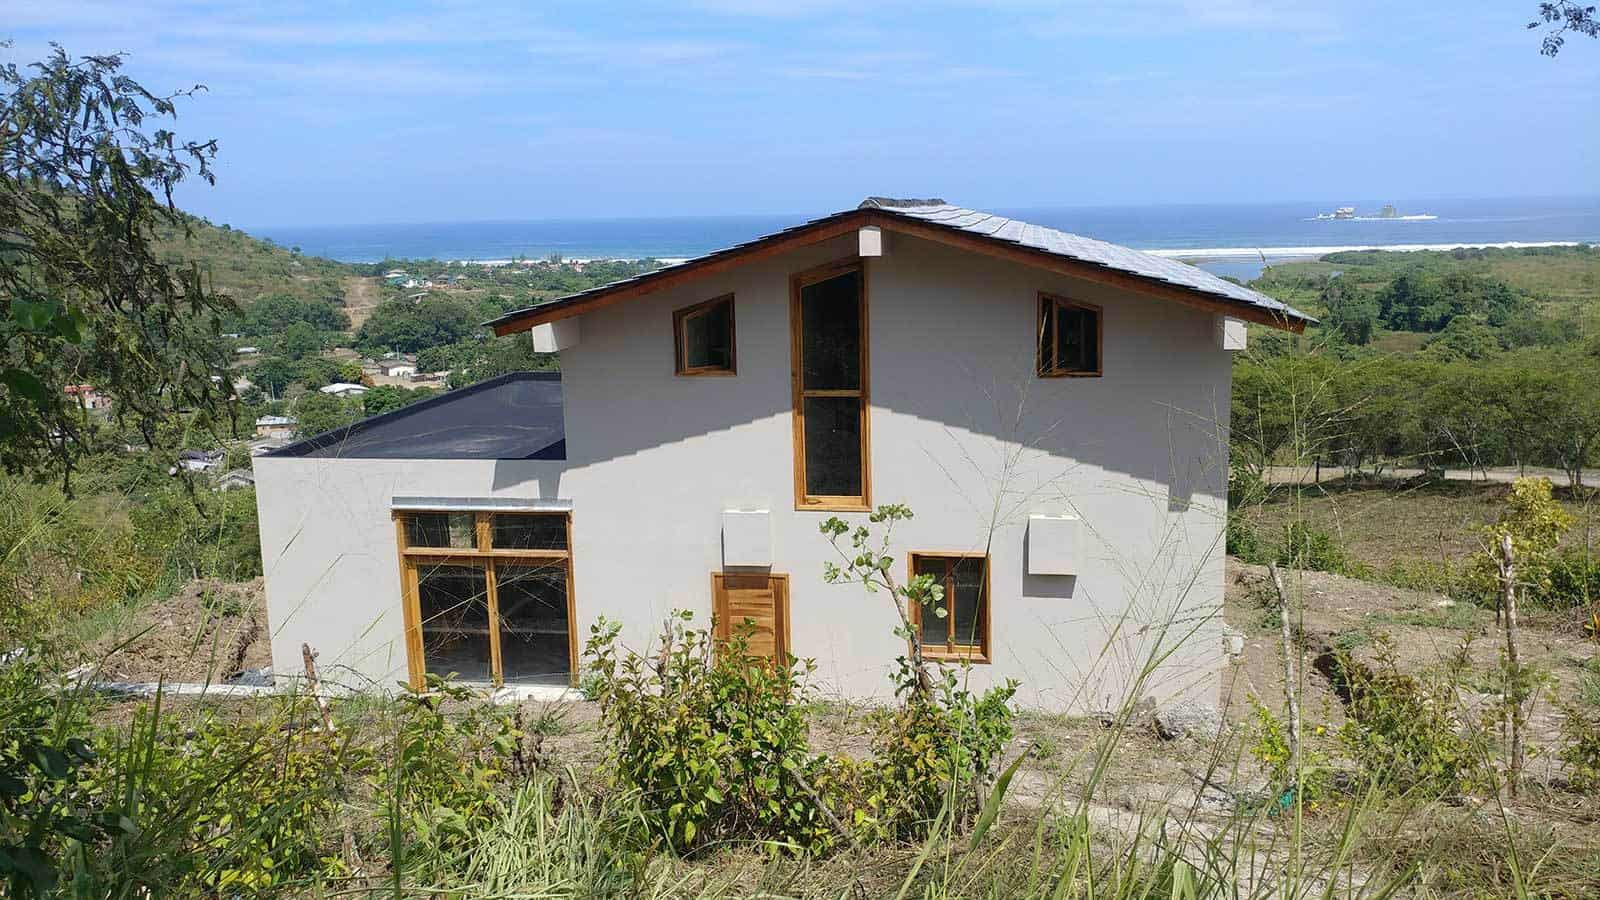 ayampe-ocean-view-house-exterior-rear-02--1600x900